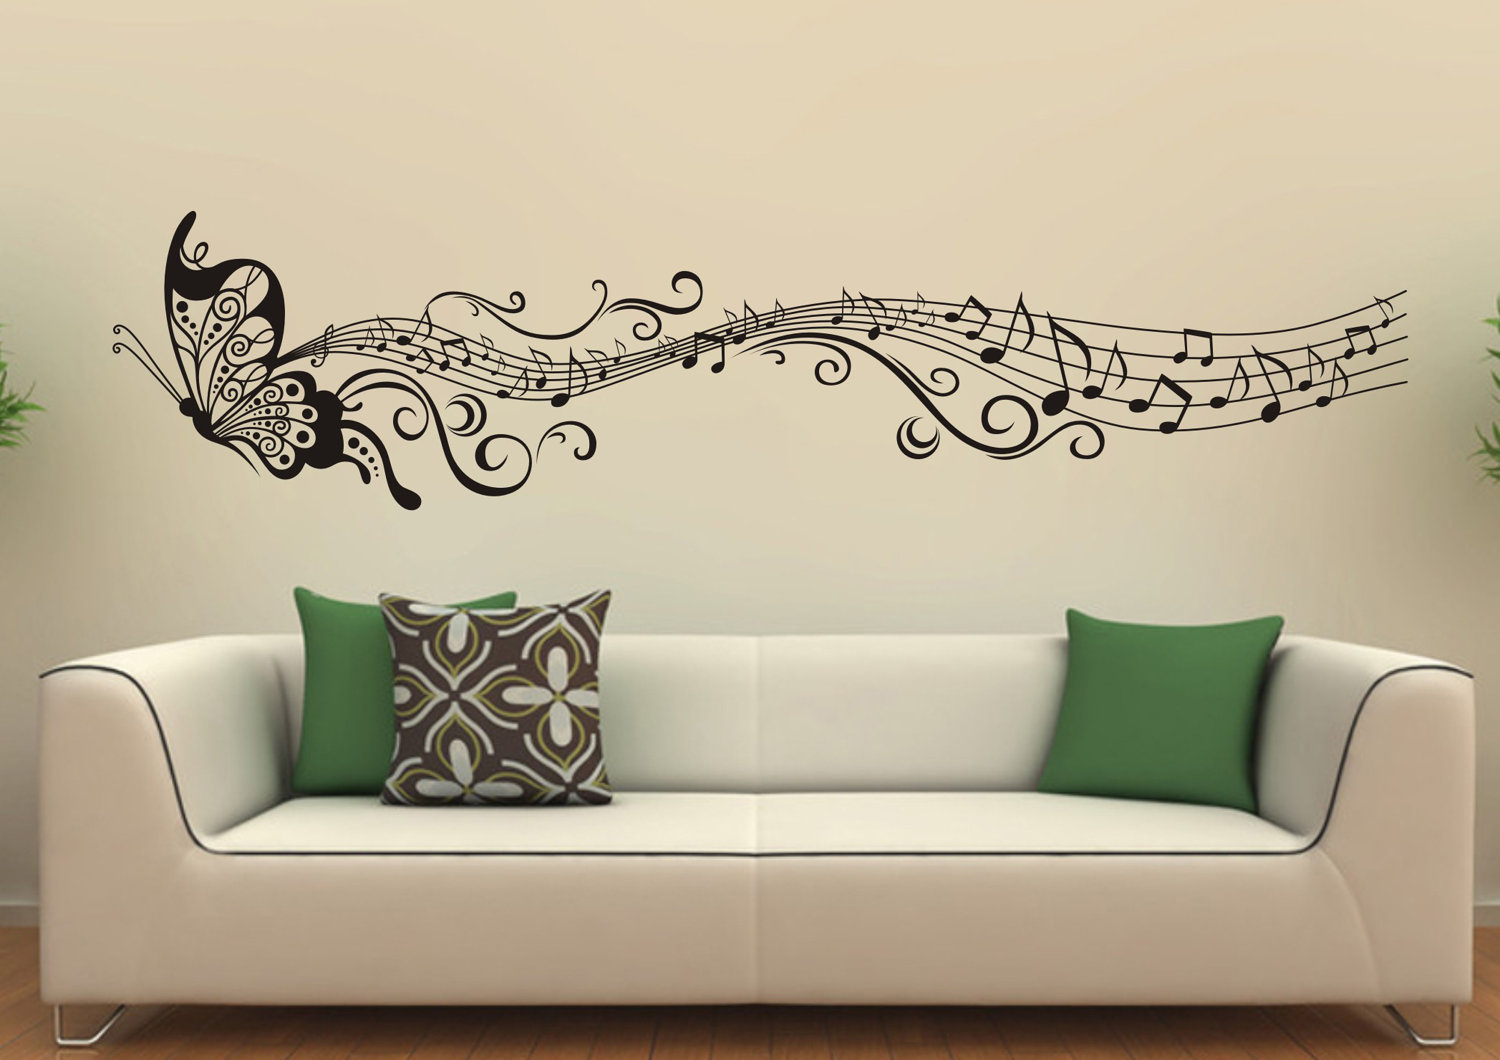 Attractive Butterfly Shaped Mural Wall Decoration Ideas above Long White Sofa Completing Comfy Sitting Room